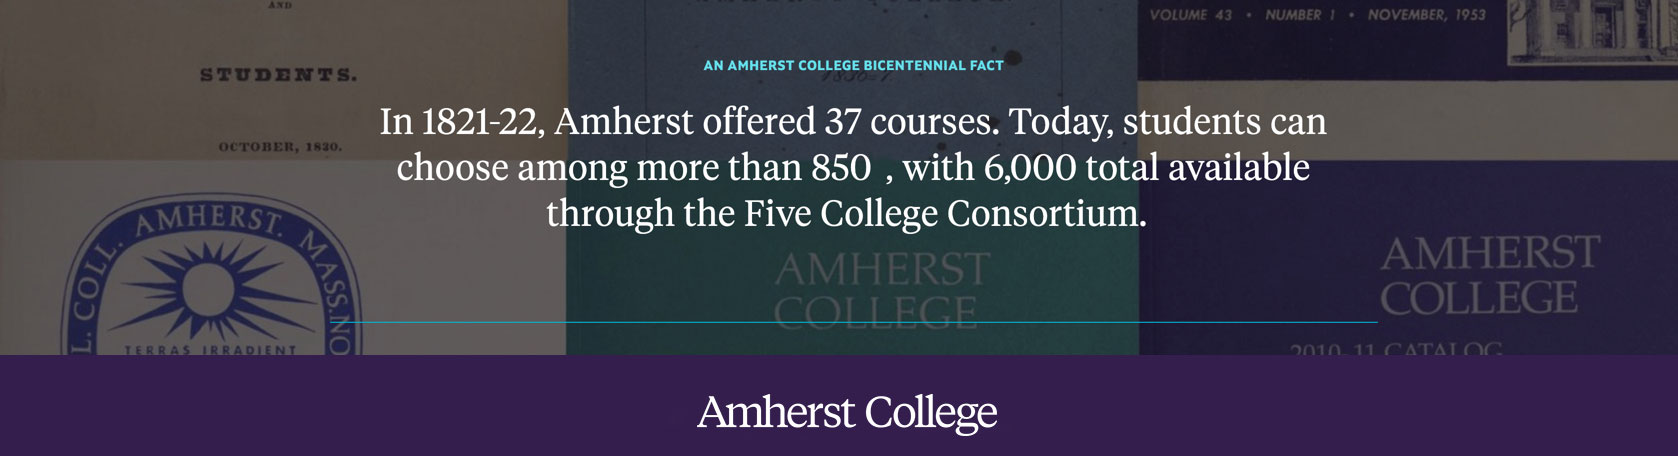 A collage of Amherst College course catalogs